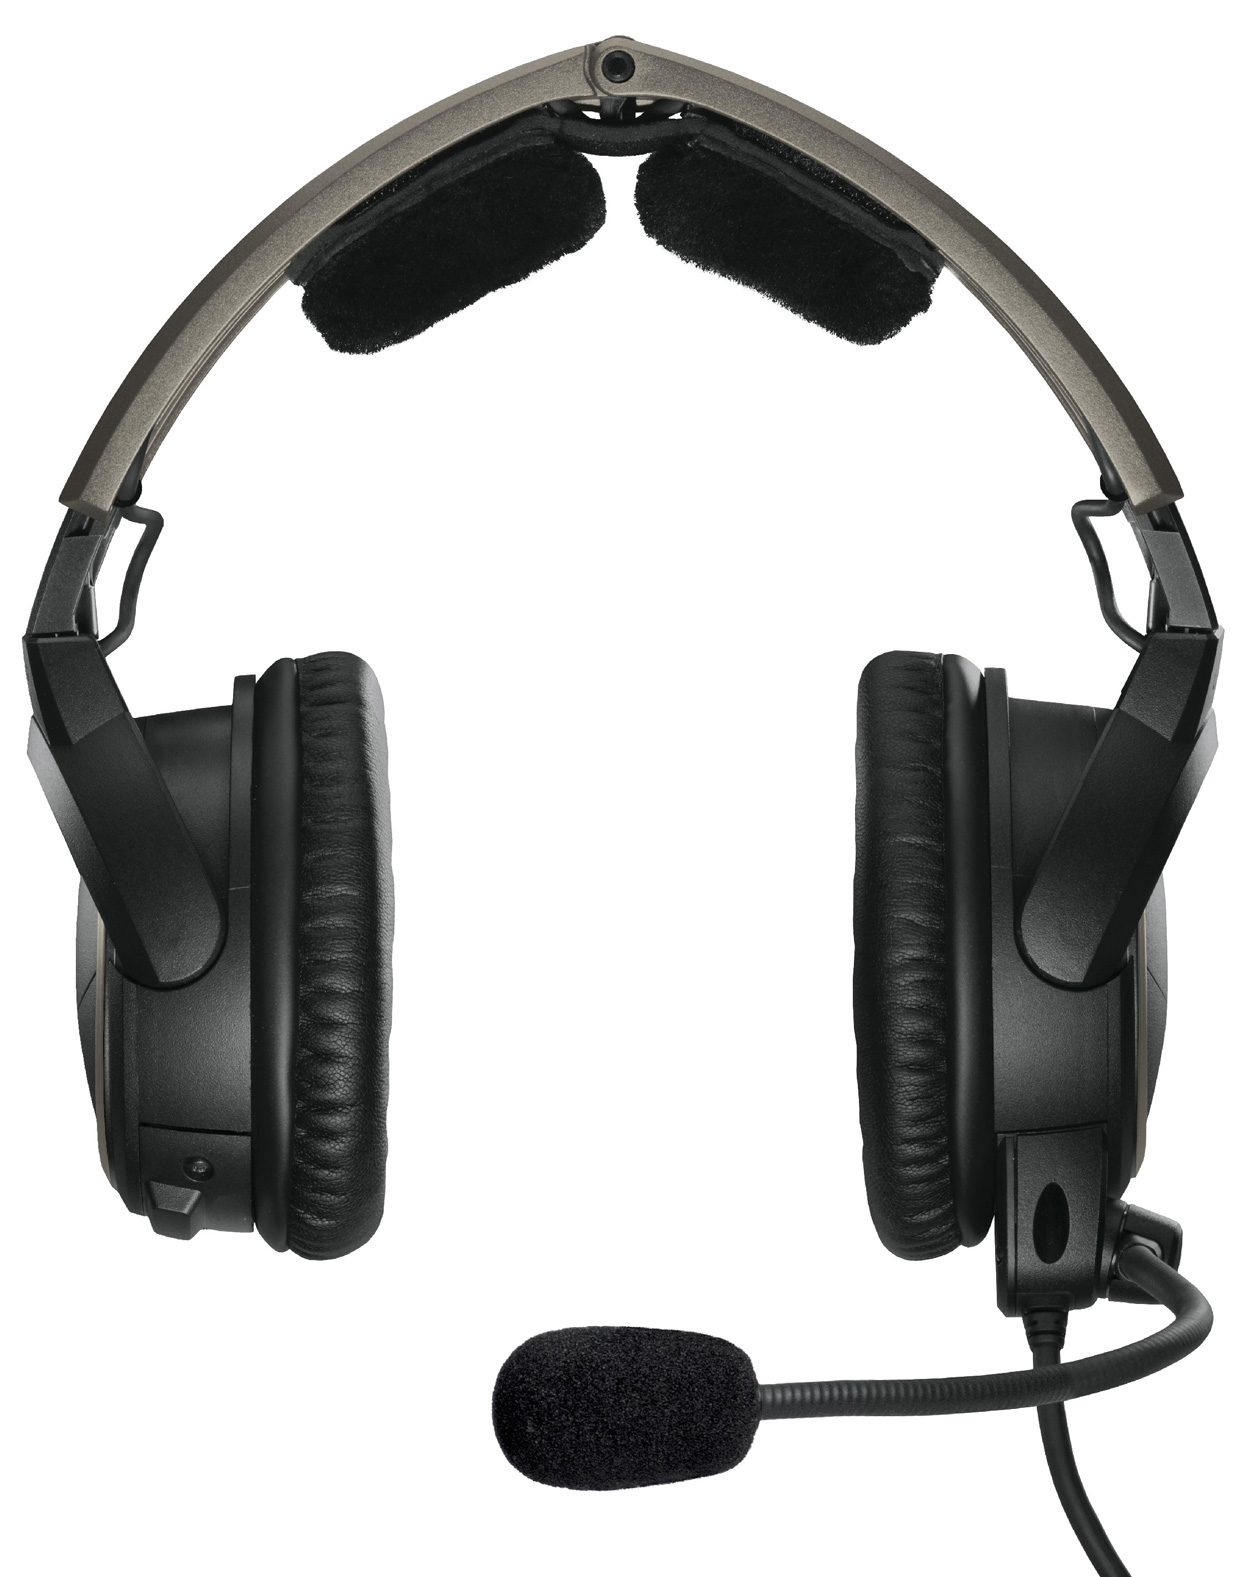 ANR - Bose A20 Fixed-Wing Headset with Twin Plugs, Non-Bluetooth, Battery powered, Hi Impedance (324843-2020)